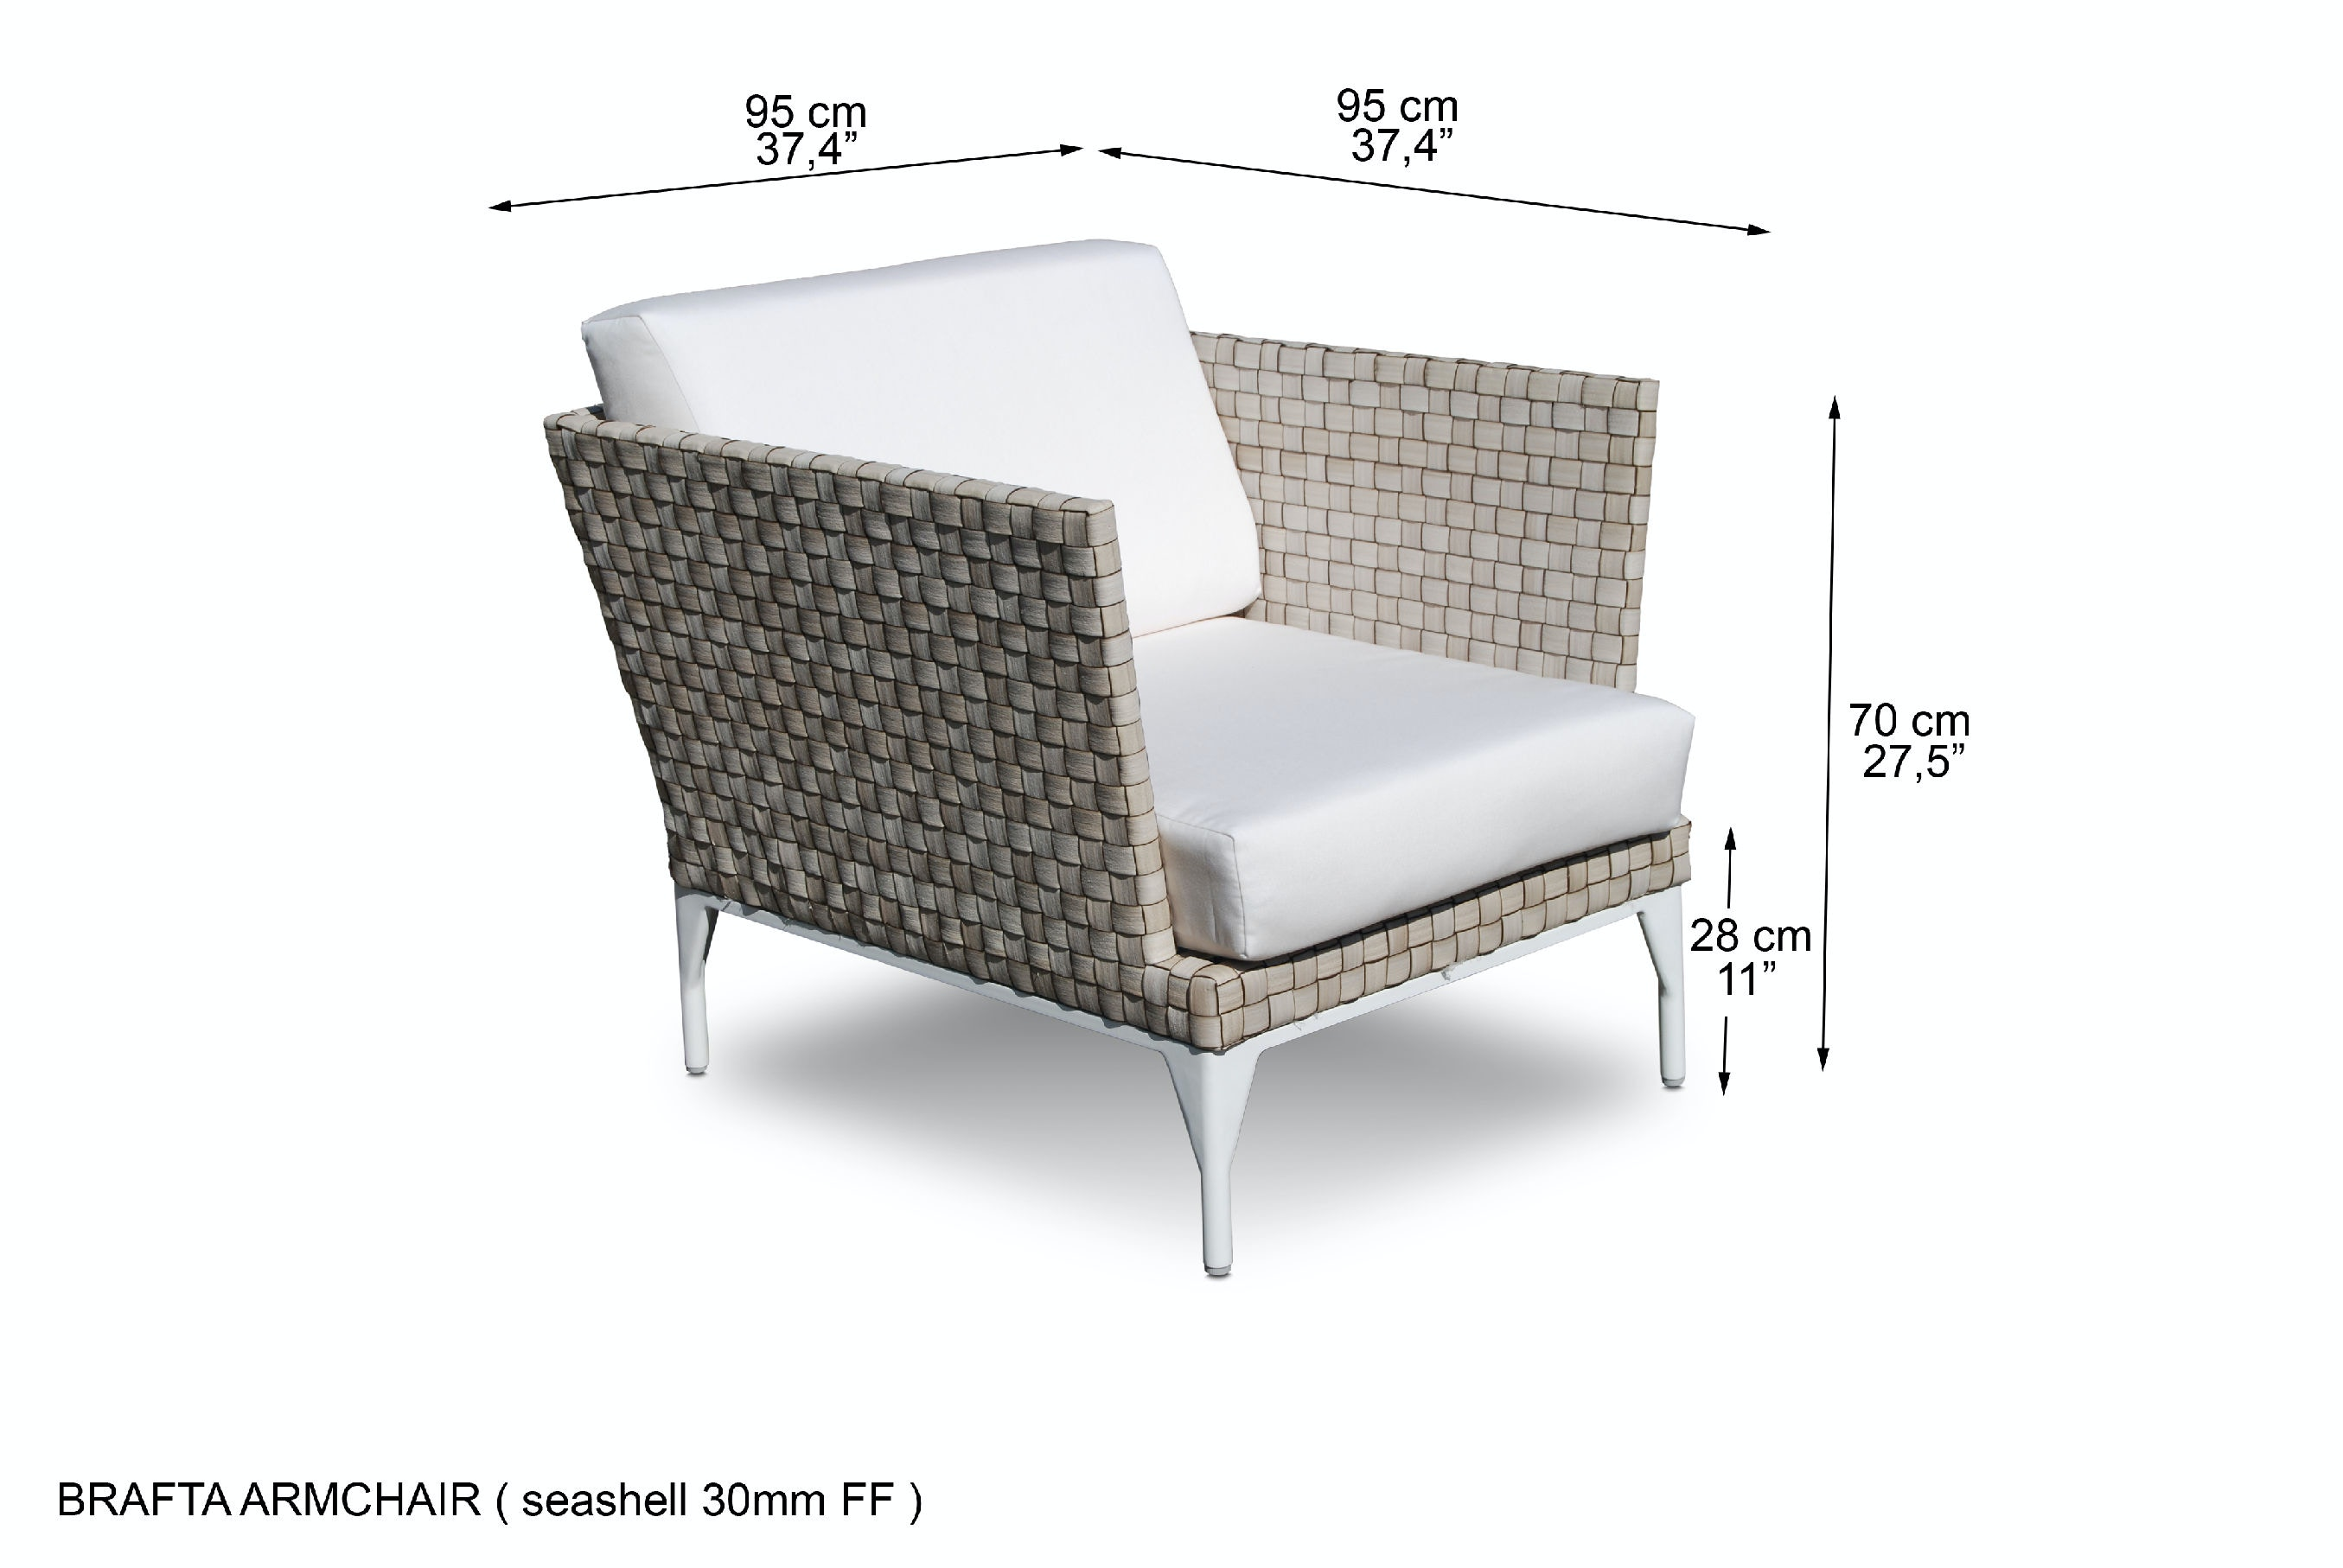 Skyline Design Brafta Armchair